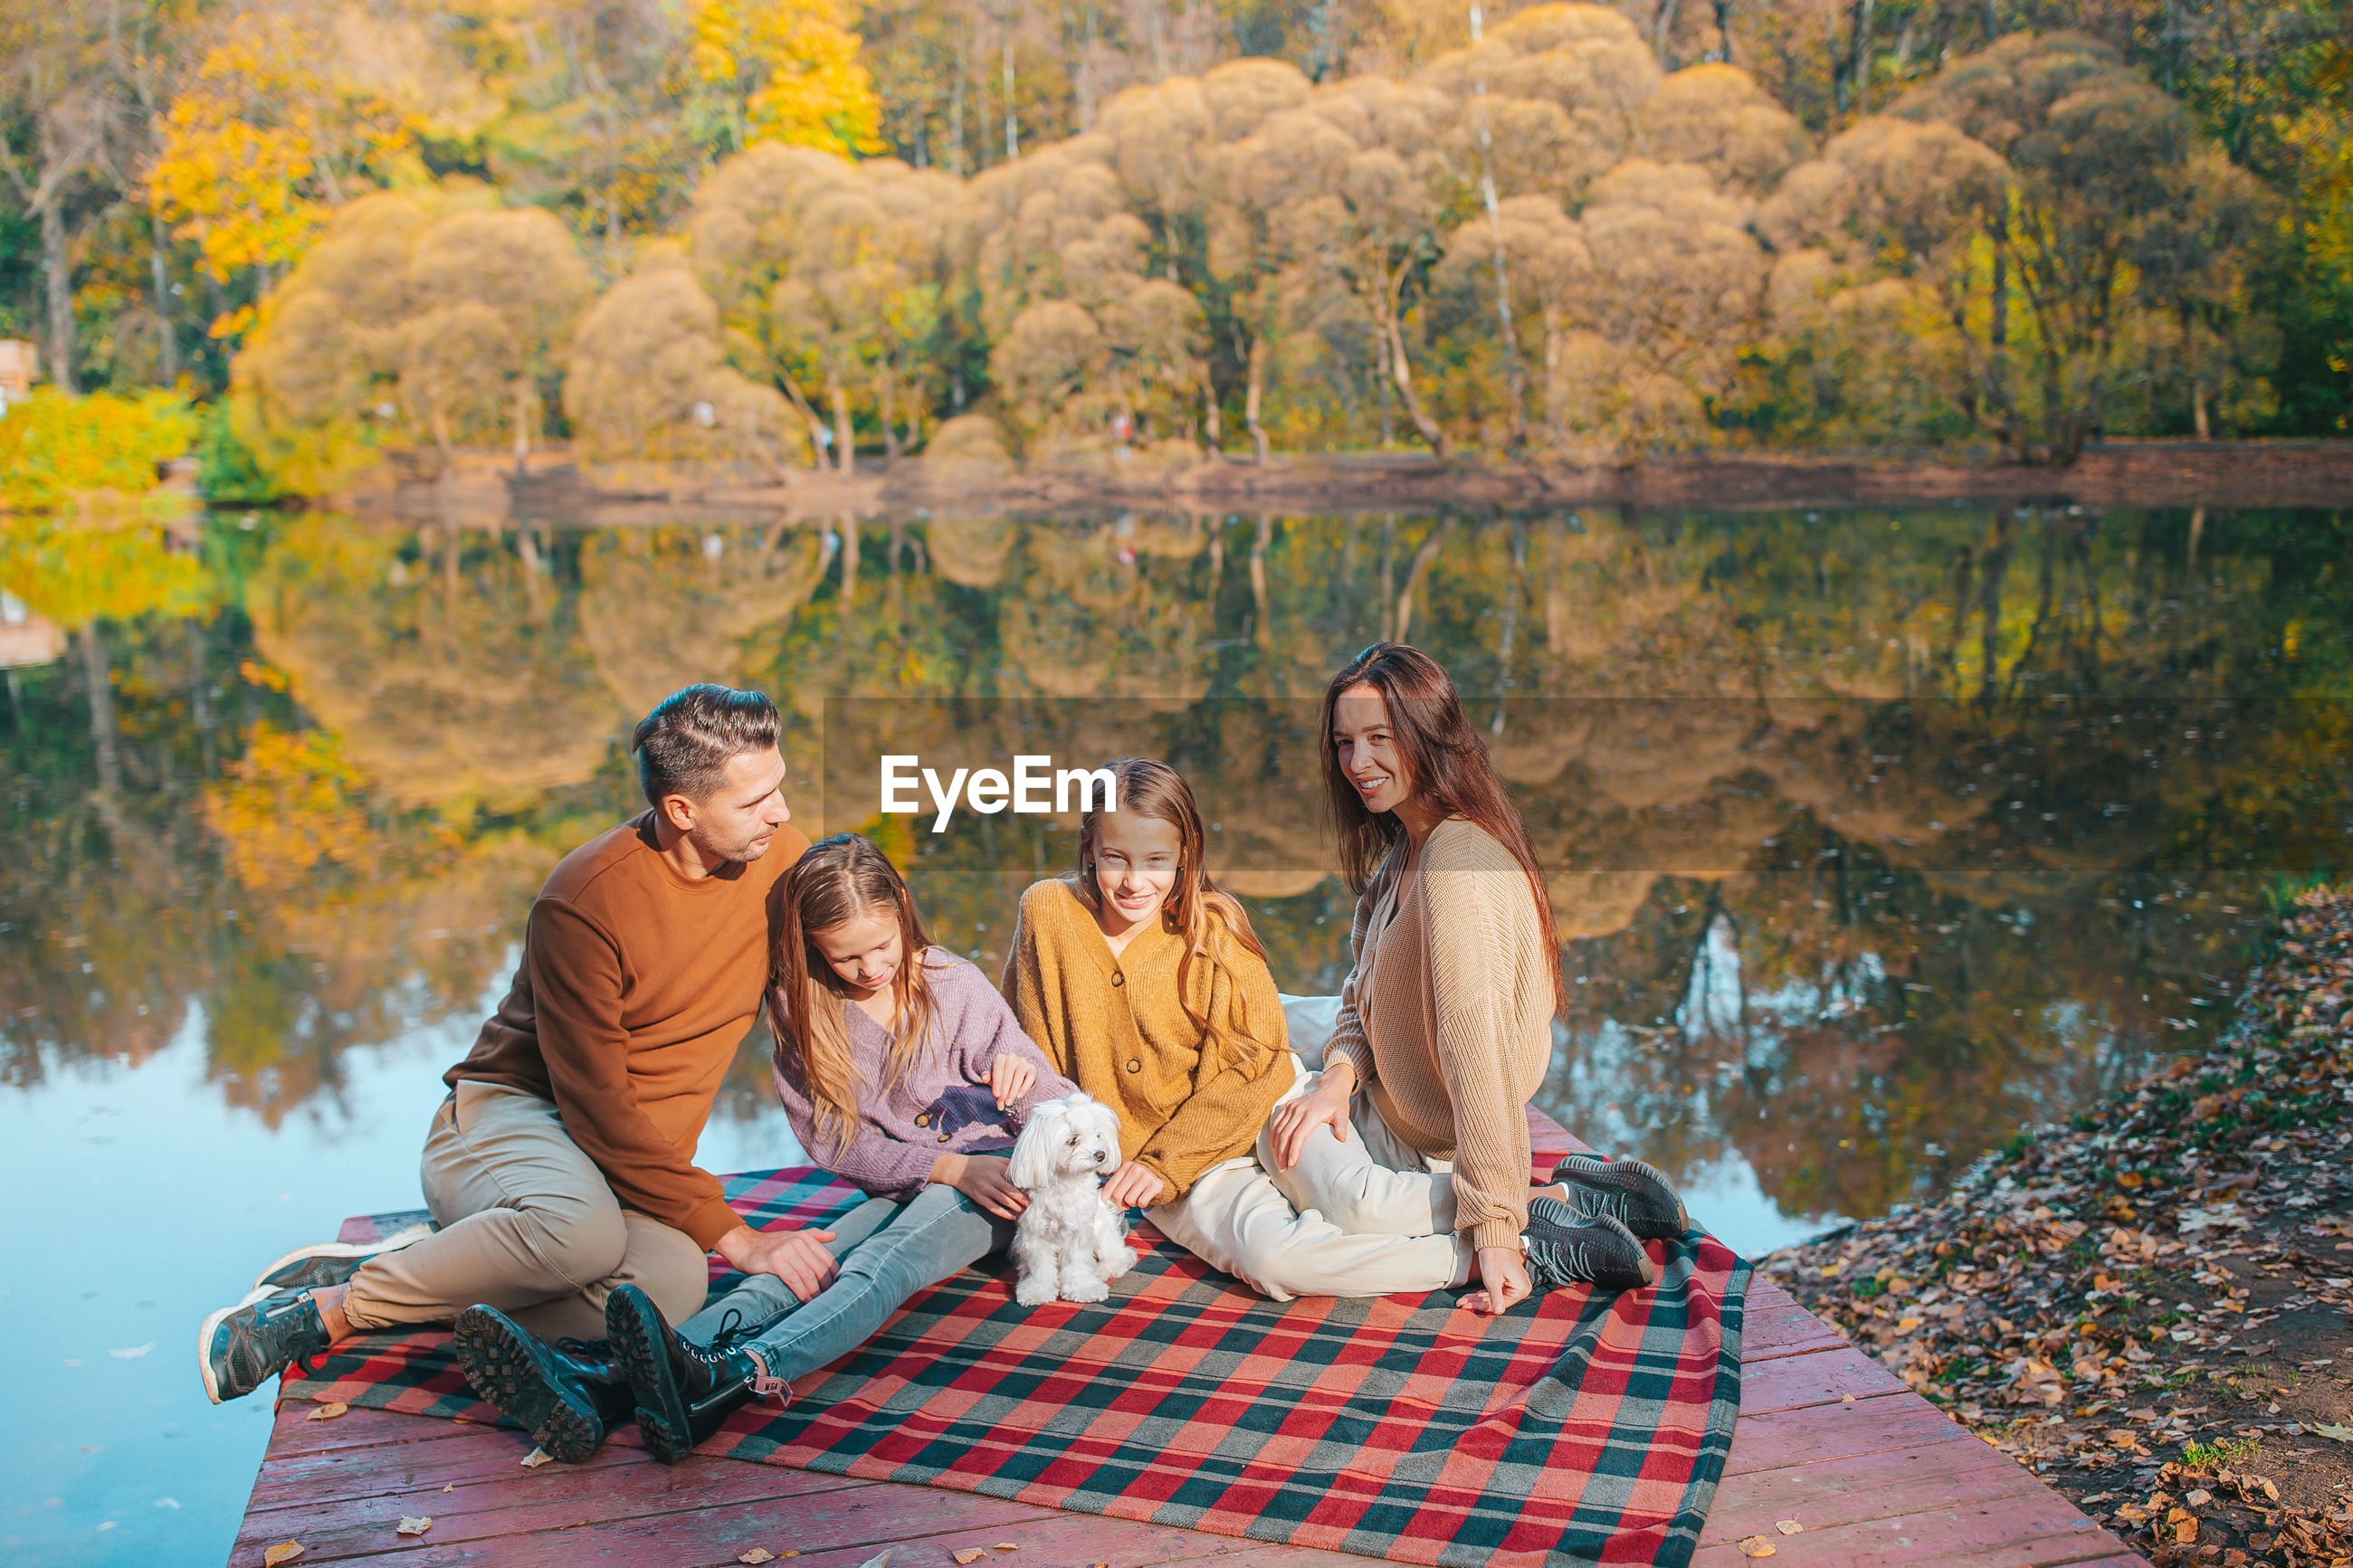 GROUP OF PEOPLE SITTING IN AUTUMN